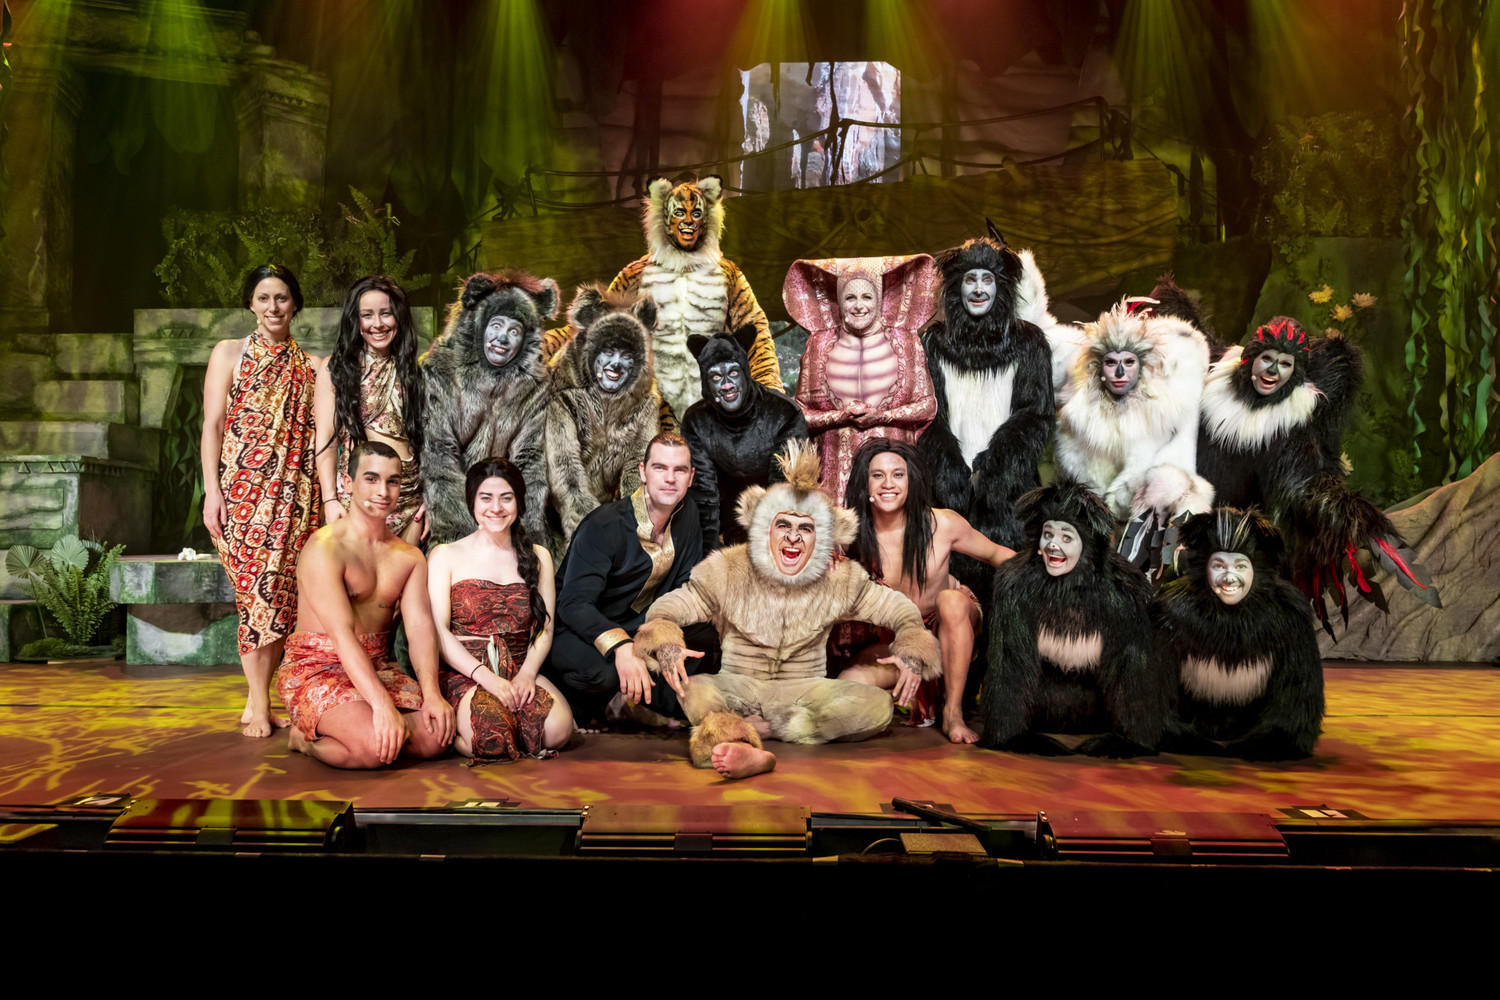 BWW Review: DJUNGELBOKEN THE MUSICAL (THE JUNGLE BOOK) at Waterfront